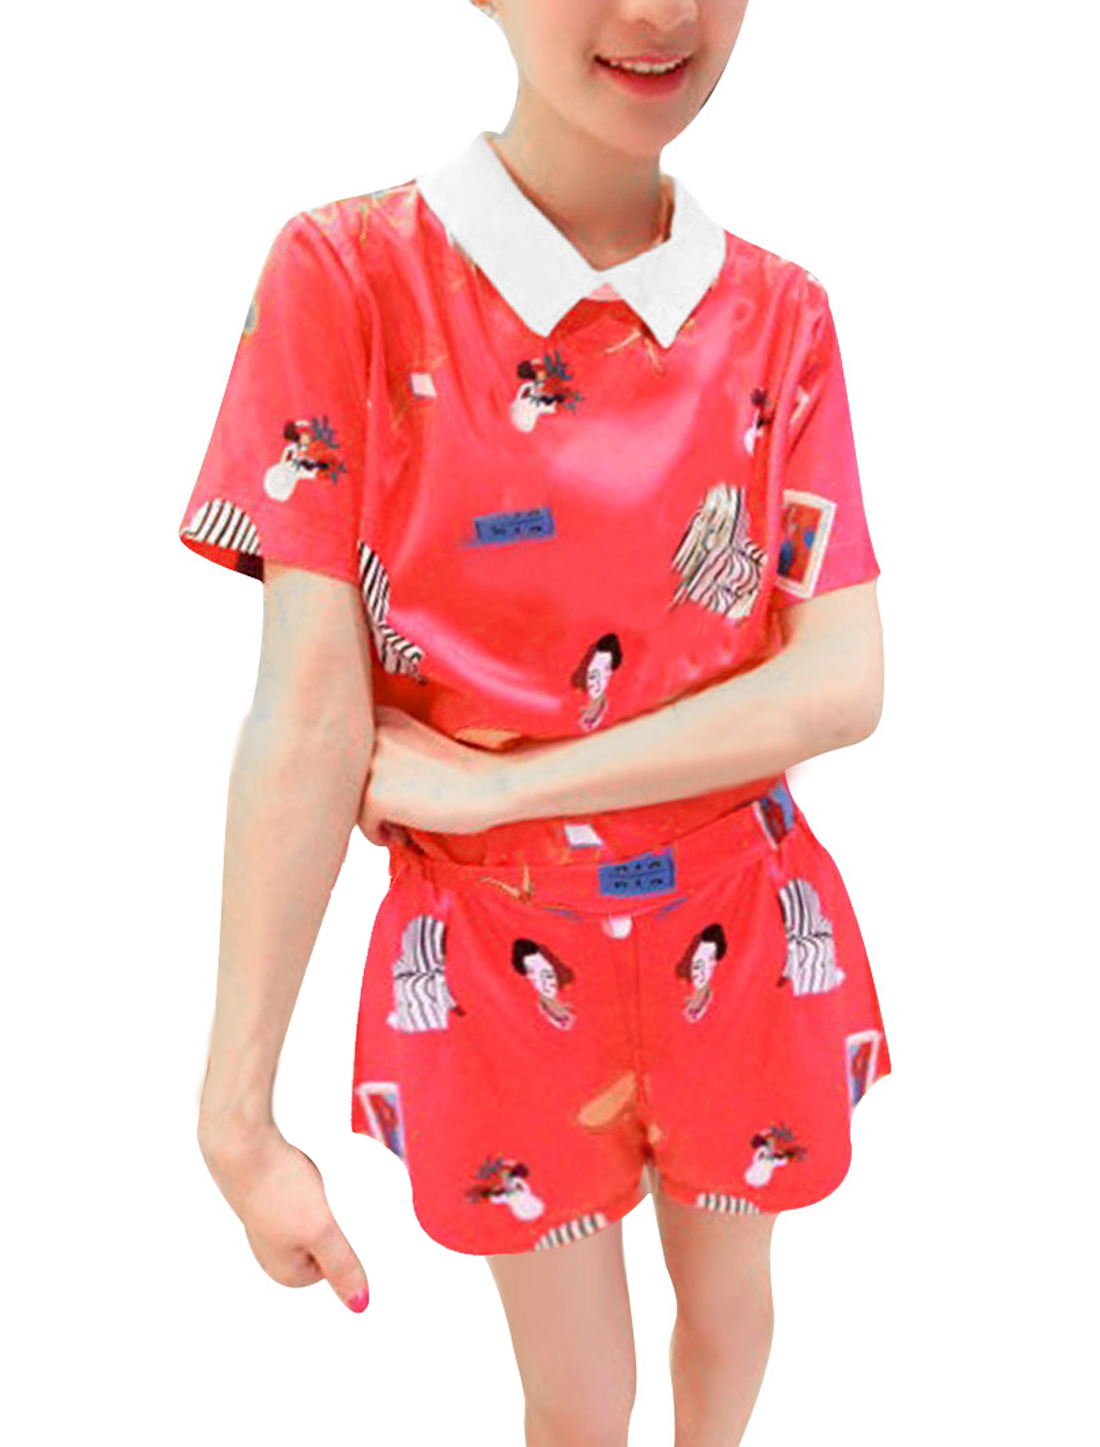 Lady Short Sleeve Zipped Cartoon Prints Blouse w Elastic Red Shorts XS